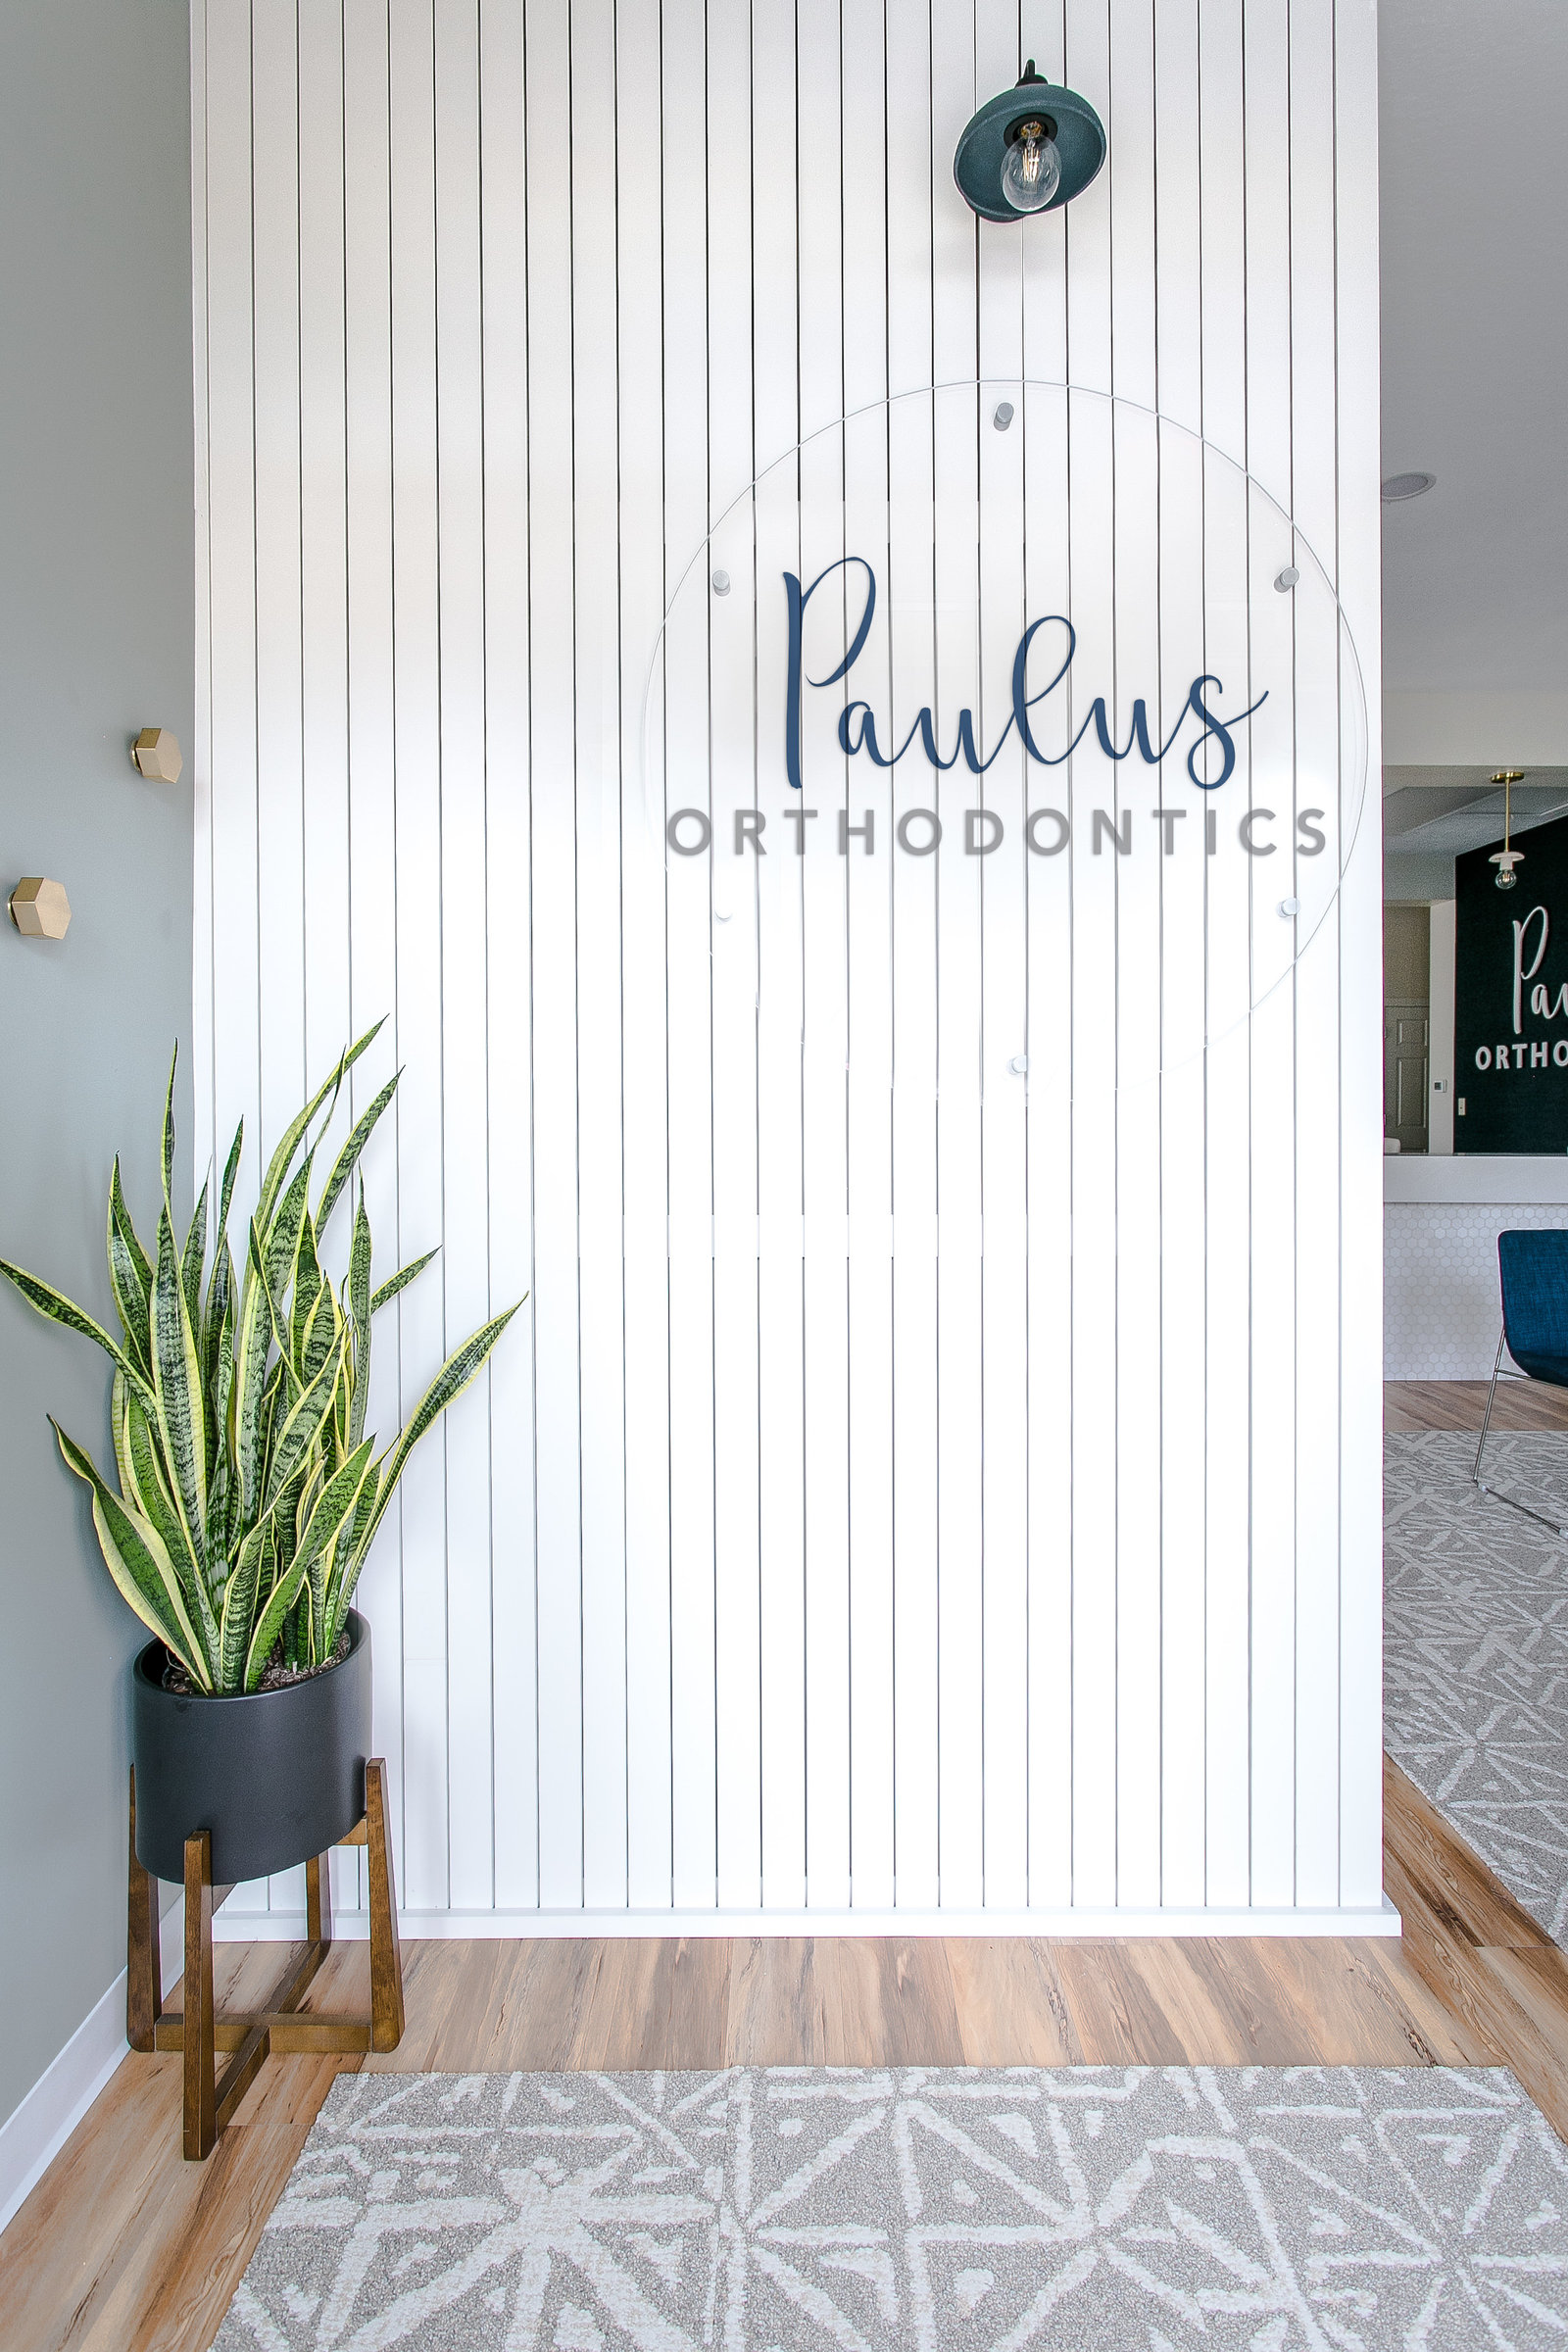 Modern Boutique style Orthodontist office with acrylic sign and vertical shiplap design